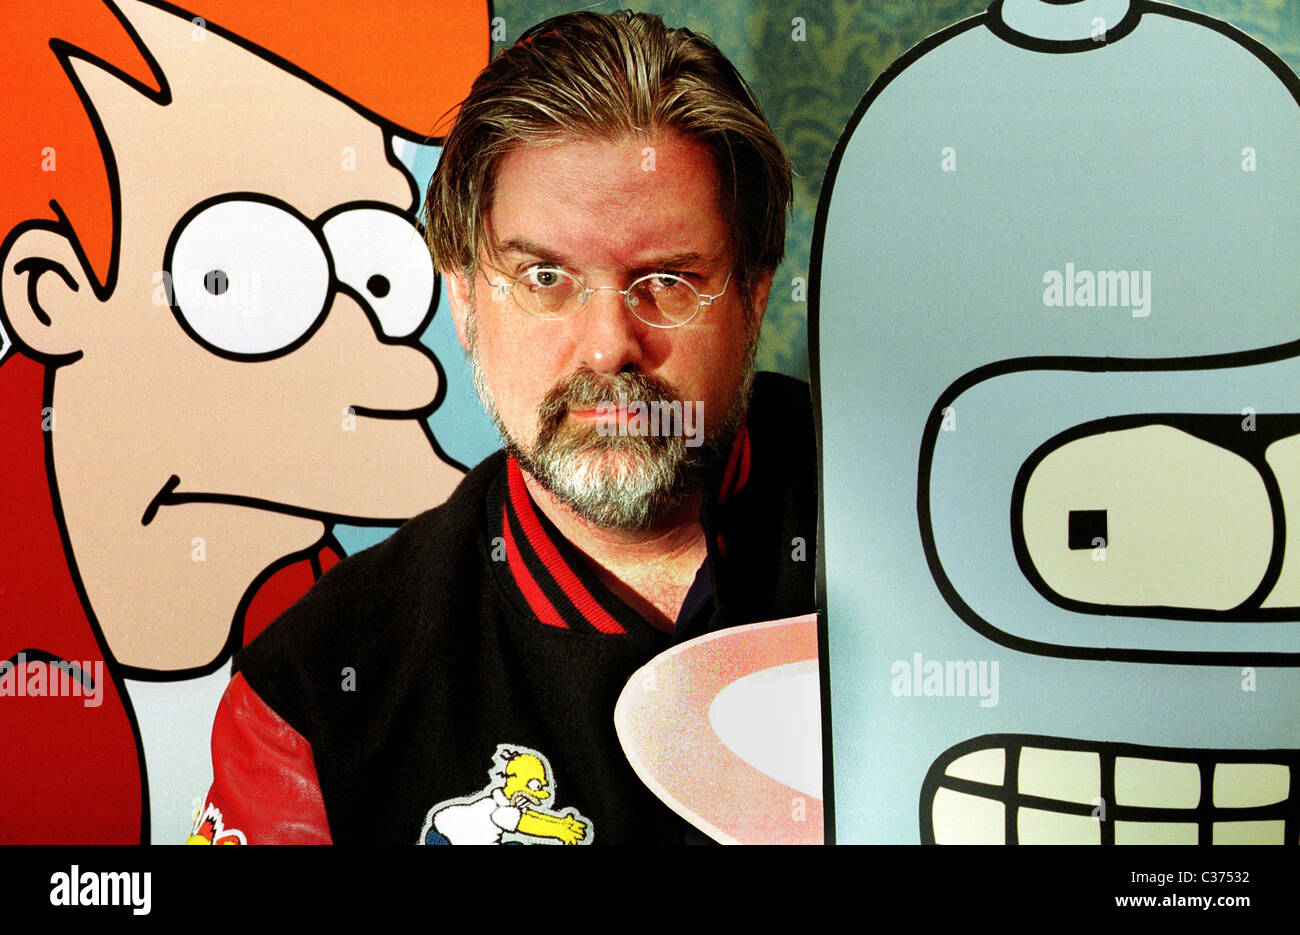 Matt Groening with cardboard cut-outs of Fry and Bender, characters from his animated show, Futurama. - Stock Image